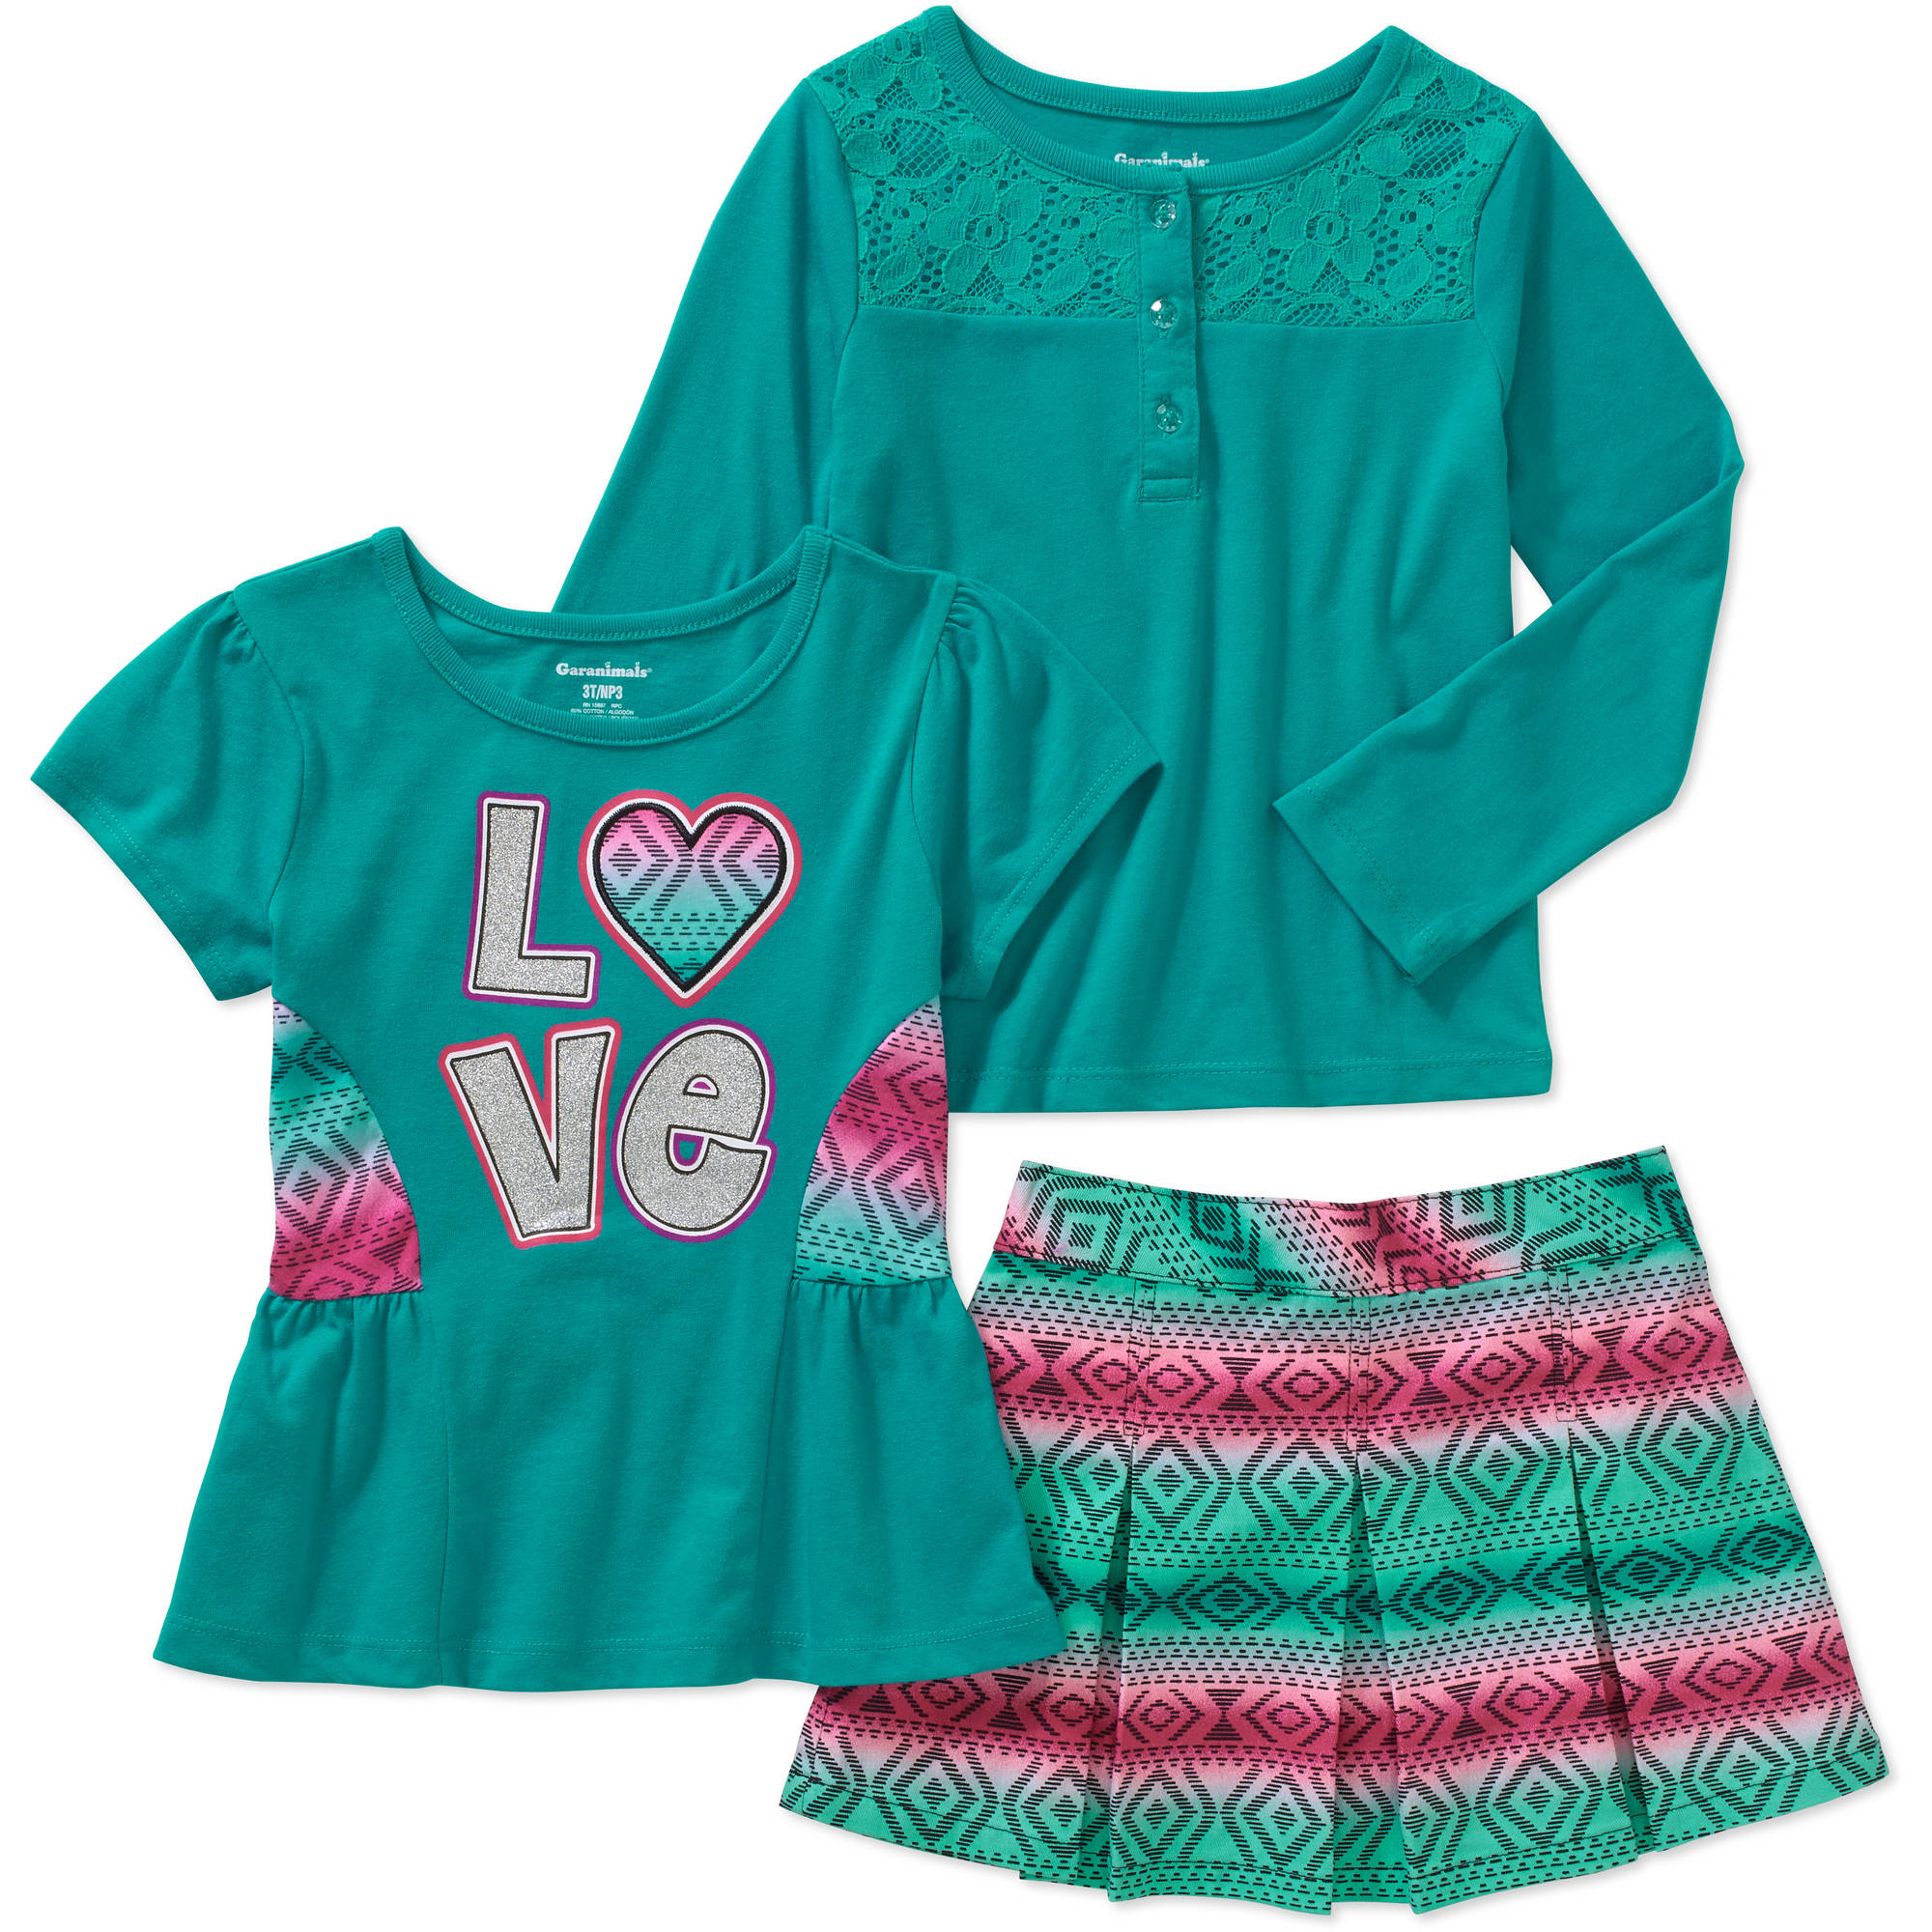 Garanimals Baby Toddler Girls' 3 Piece Long Sleeve Henley, Short Sleeve Graphic Top and Woven Skort Set